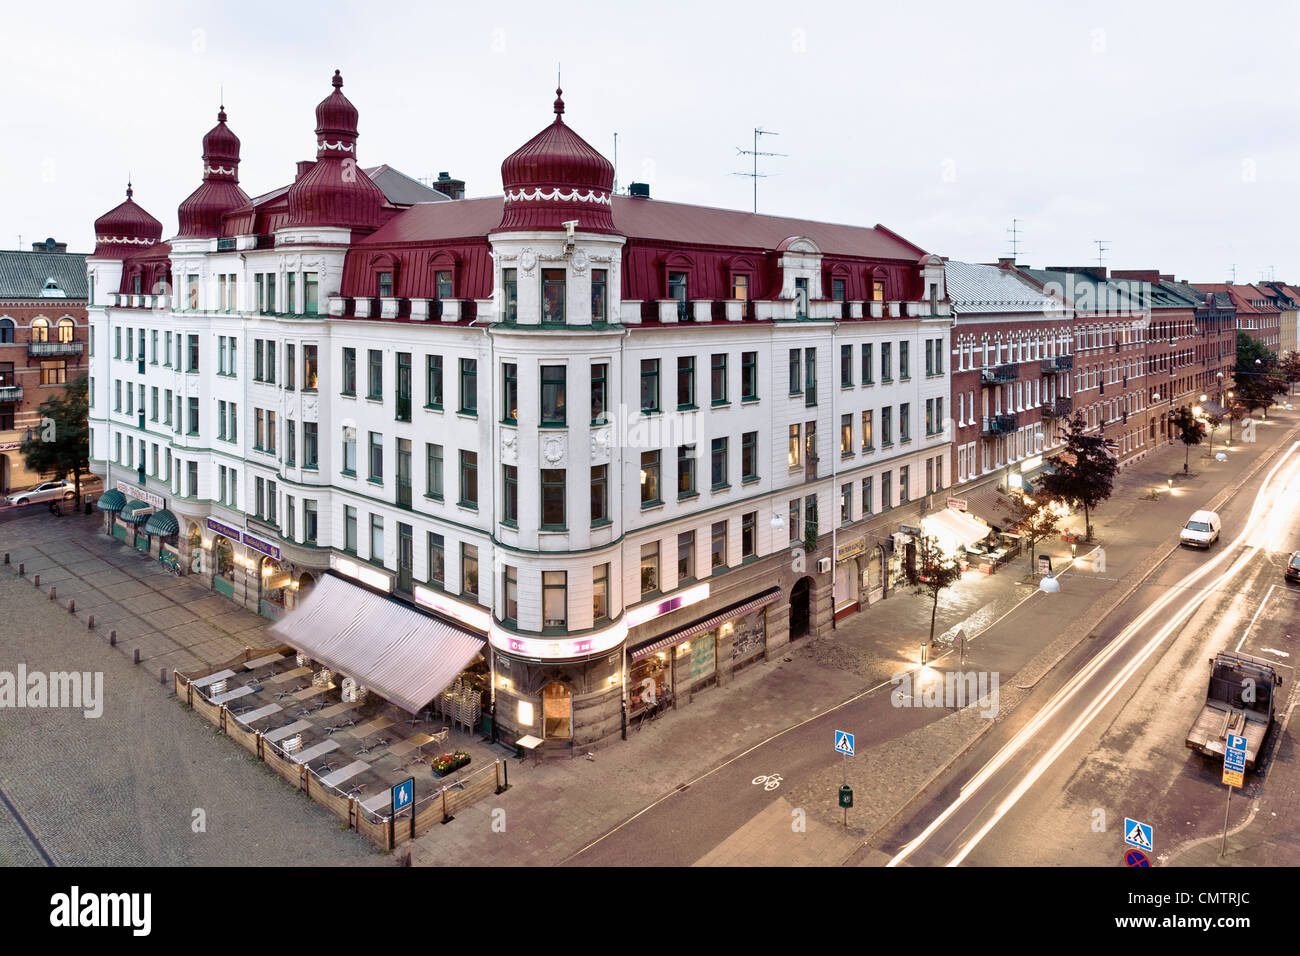 High angle view of building and street - Stock Image